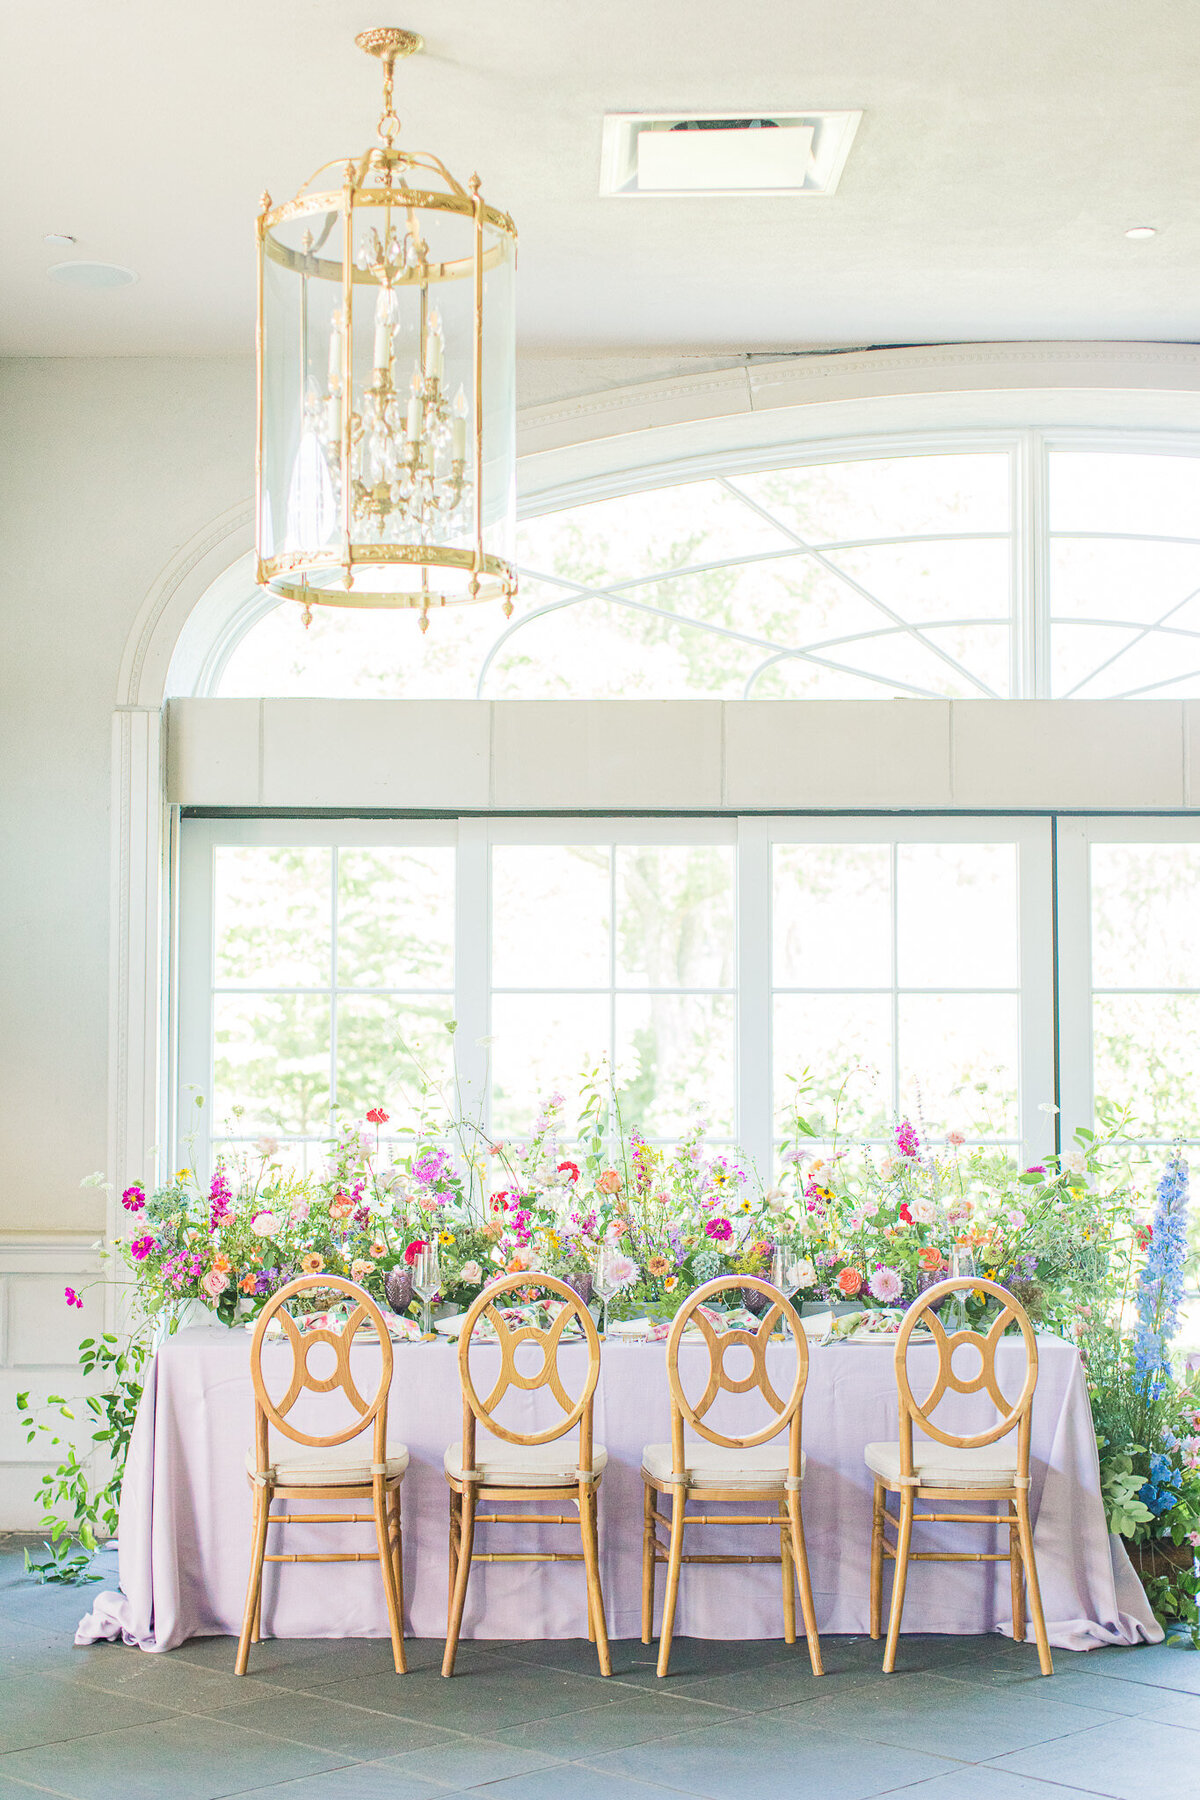 Colorful_Inspired_Wedding_Palette_inside_the_Sunroom_at_the_Park_Chateau_Estate_and_Gardens_in_East_Brunswick-5